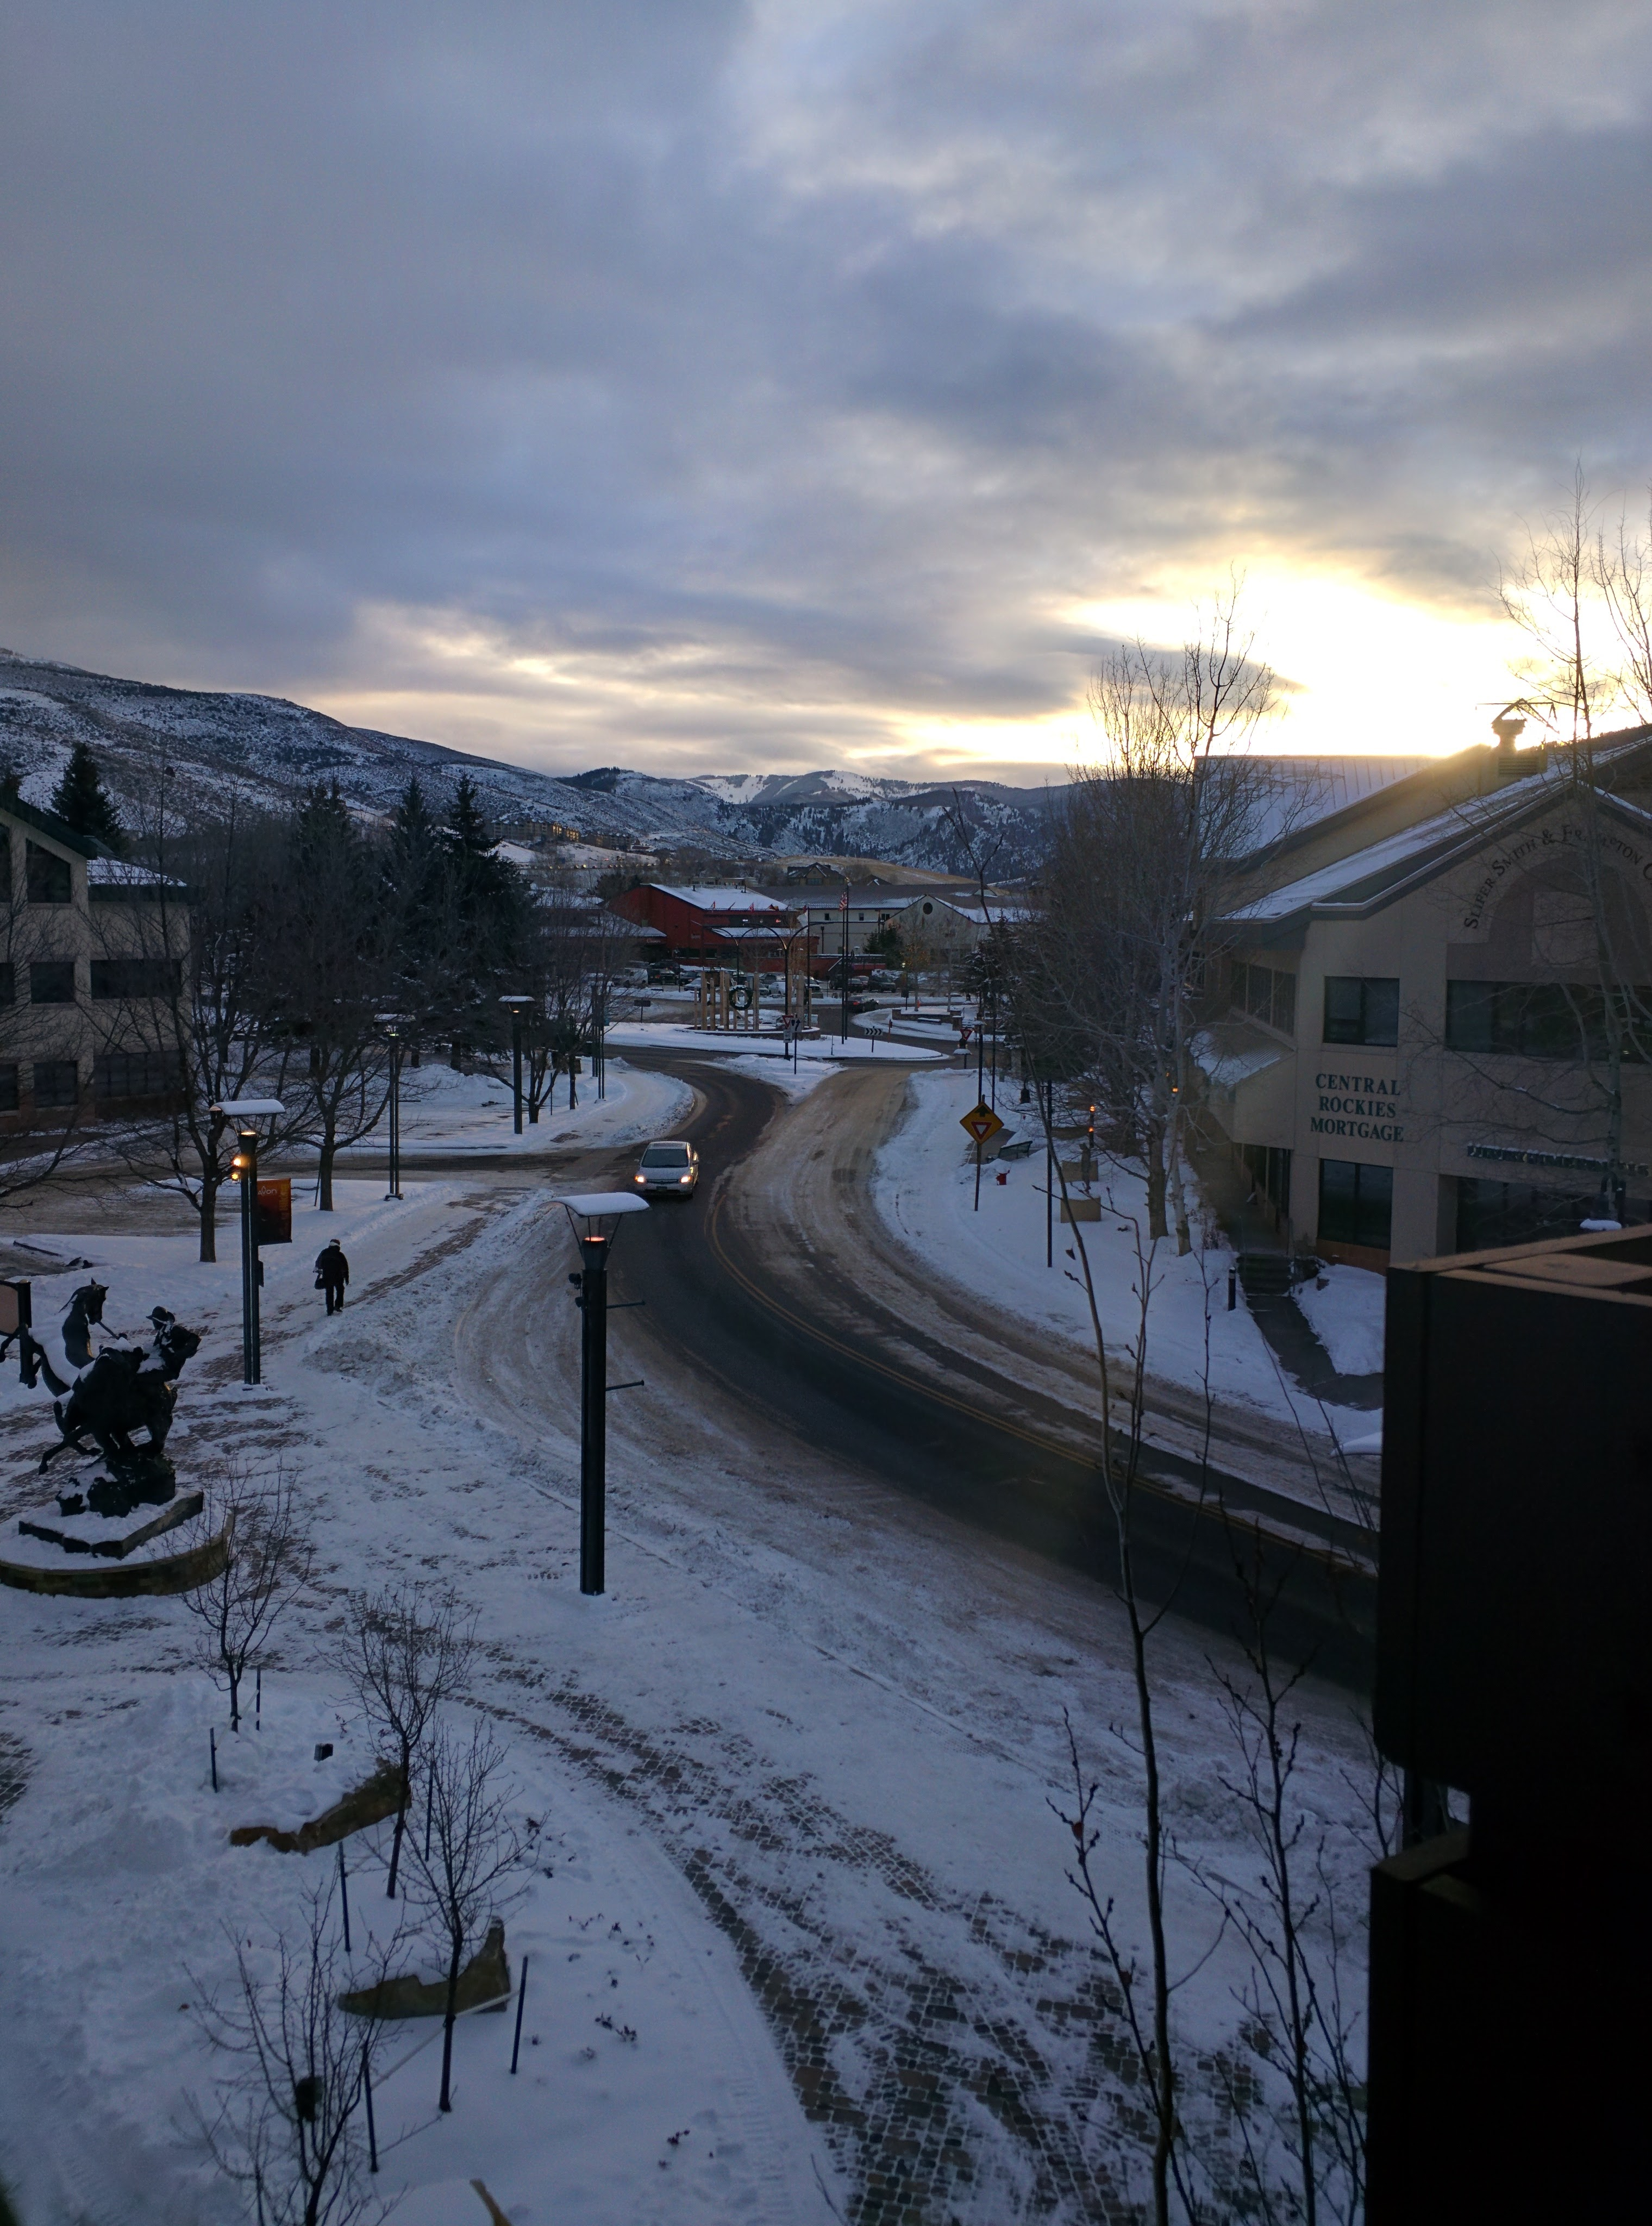 Wyndham Beaver Creek - Wyndham Resort at Avon - Colorado - Snow